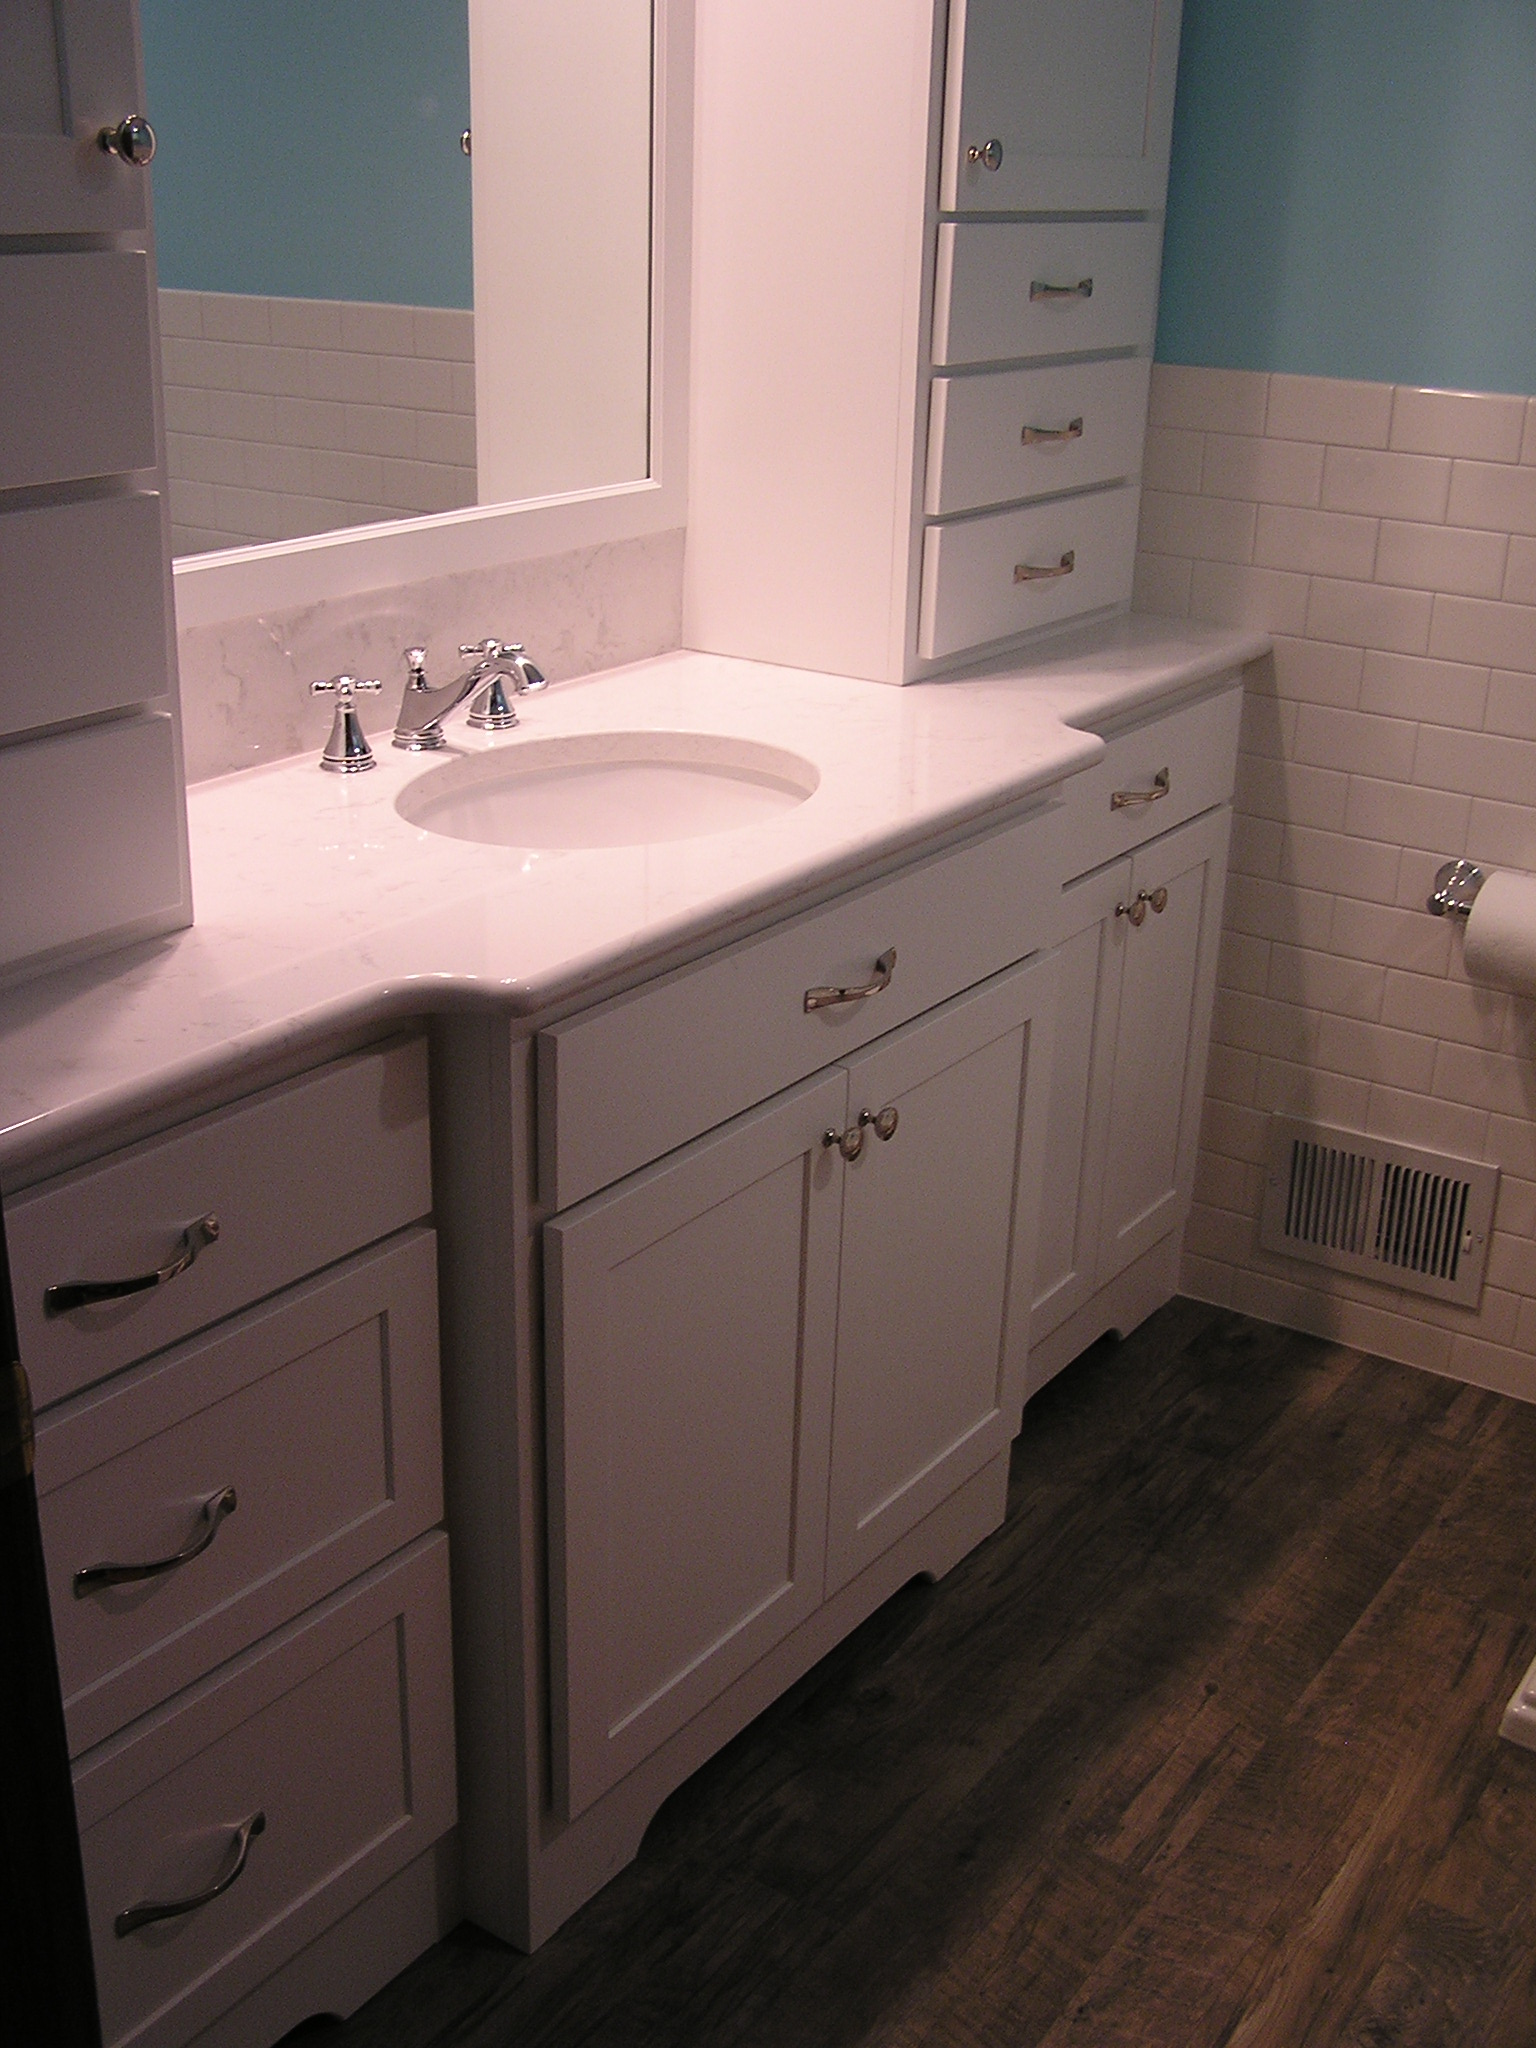 Full home remodeling in apple valley mn allrounder for Whole bathroom remodel